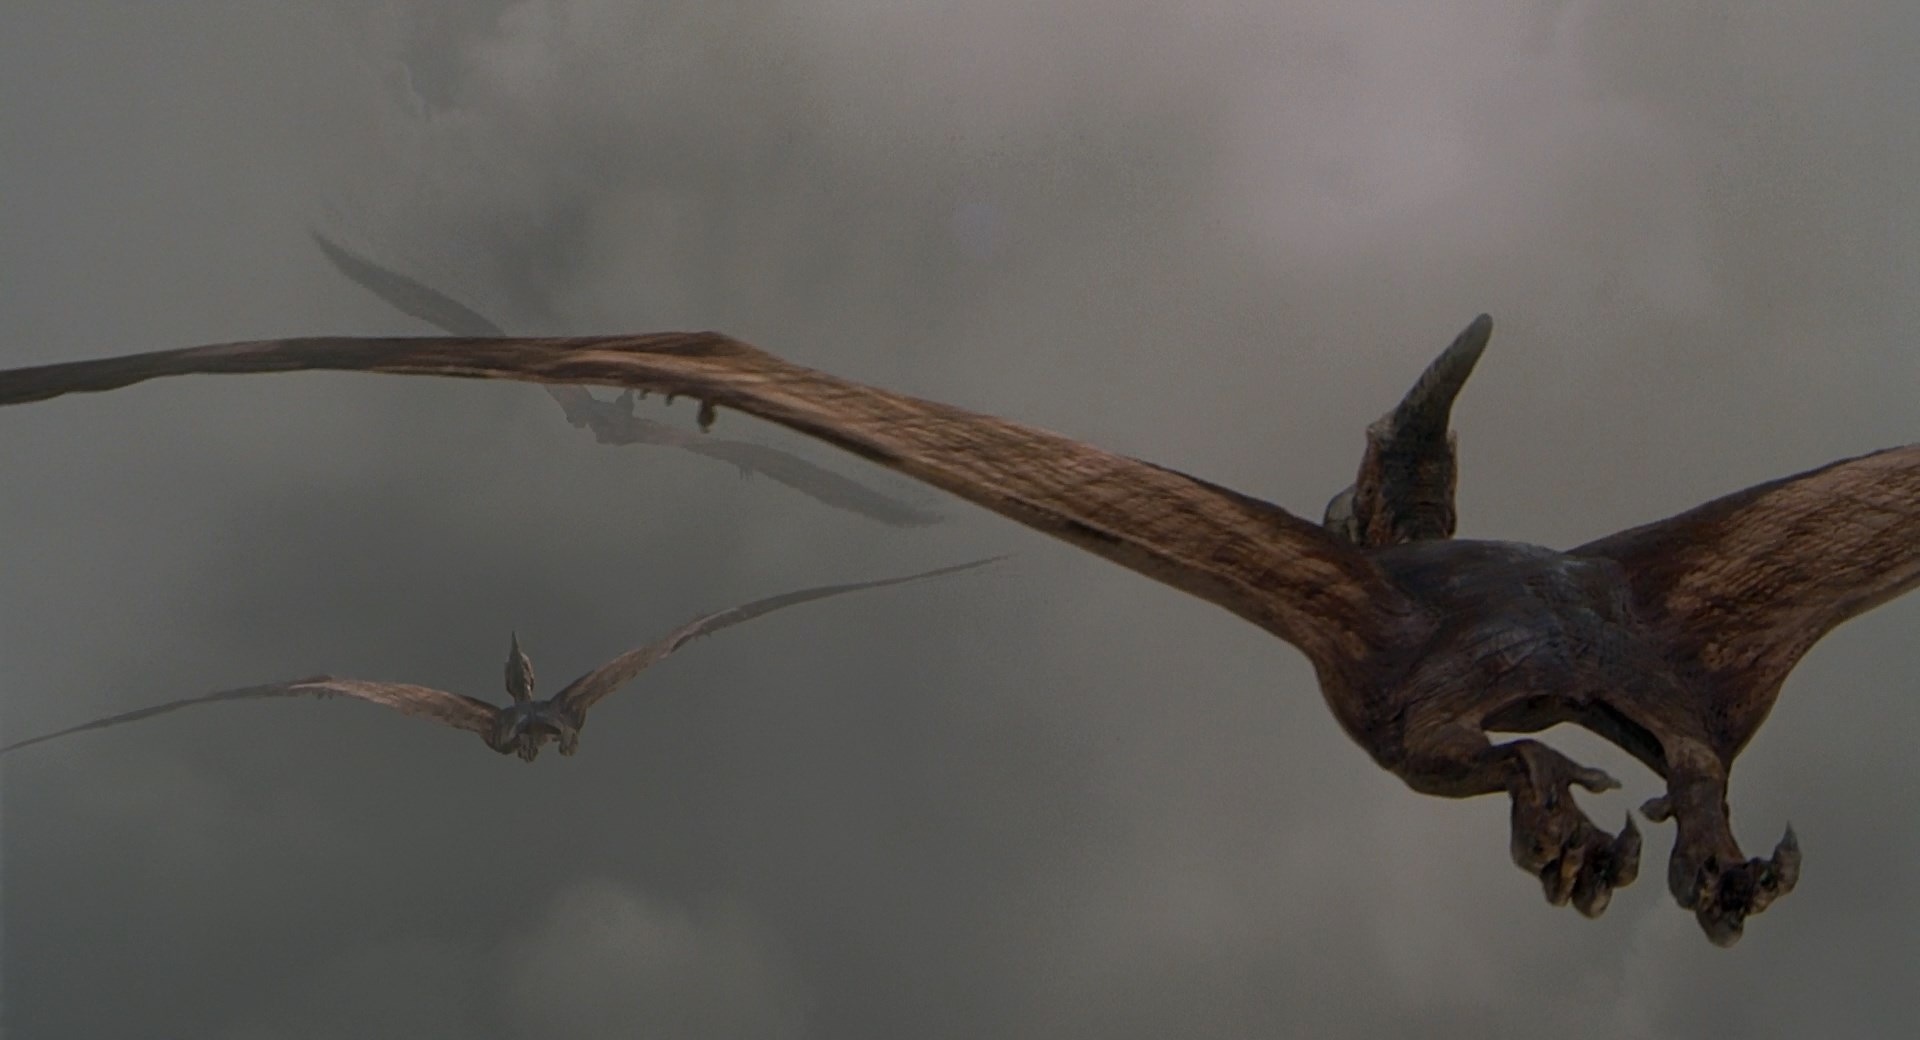 pteranodon the lost world jurassic park 3 jurassic world